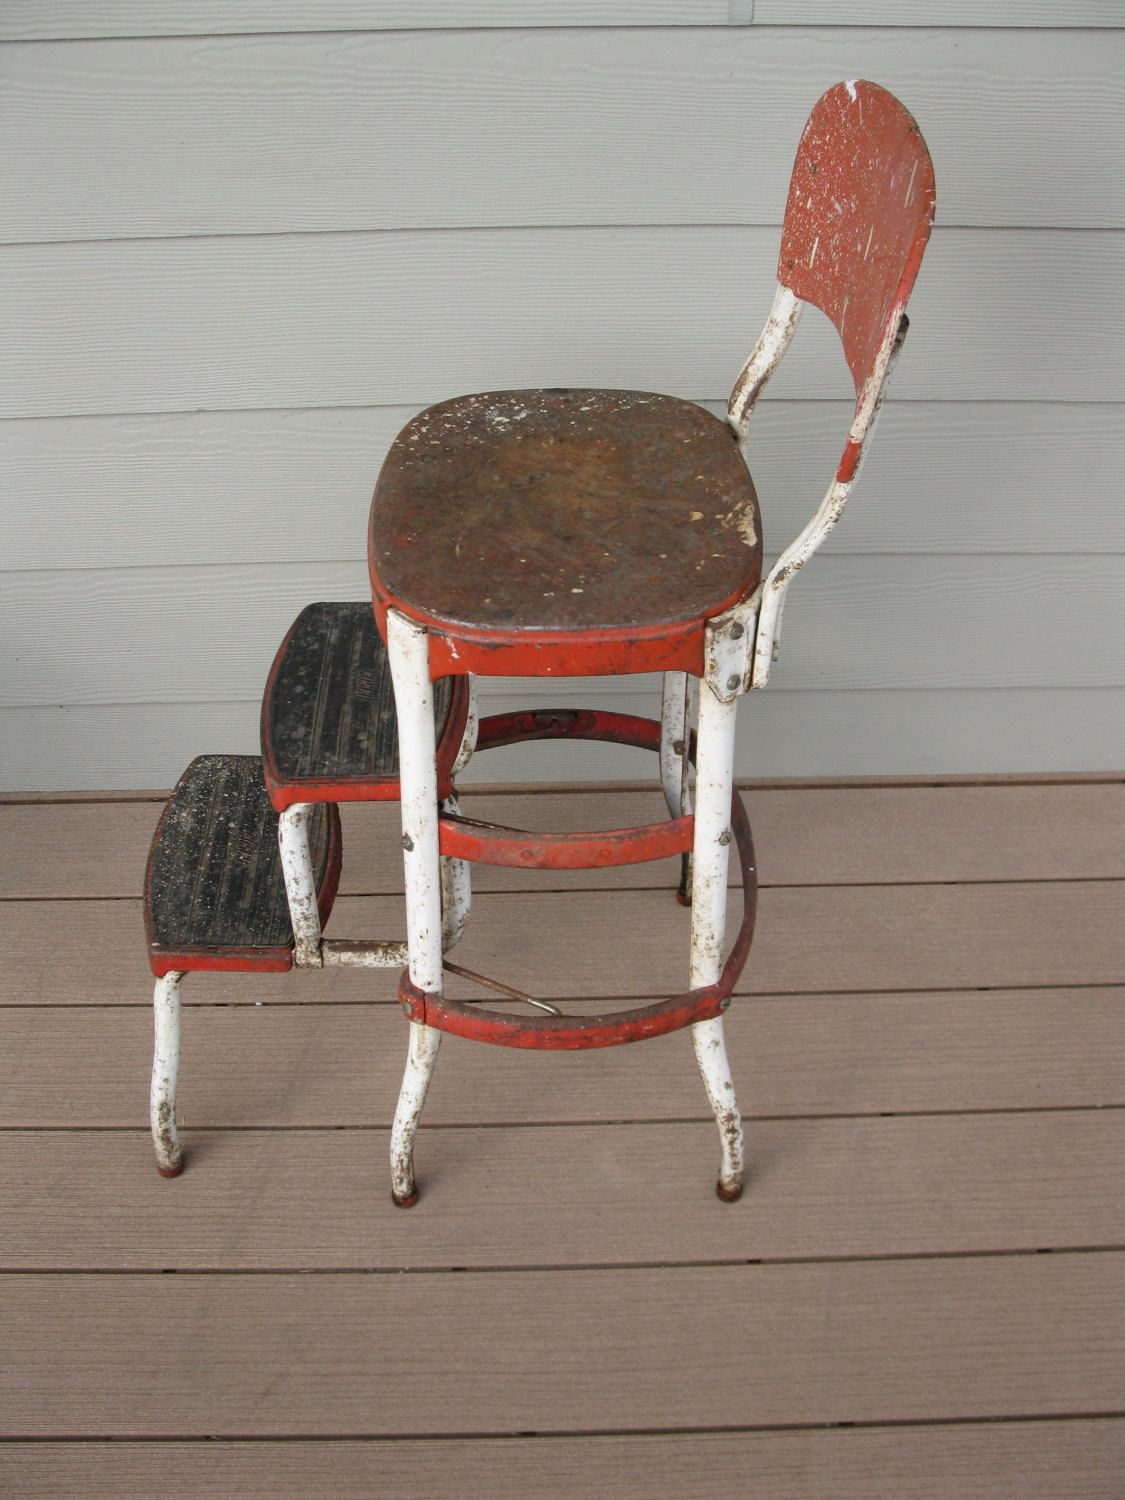 Awe Inspiring Metal Cosco Stool Cosco Chair Childs Stool Step Stool Squirreltailoven Fun Painted Chair Ideas Images Squirreltailovenorg